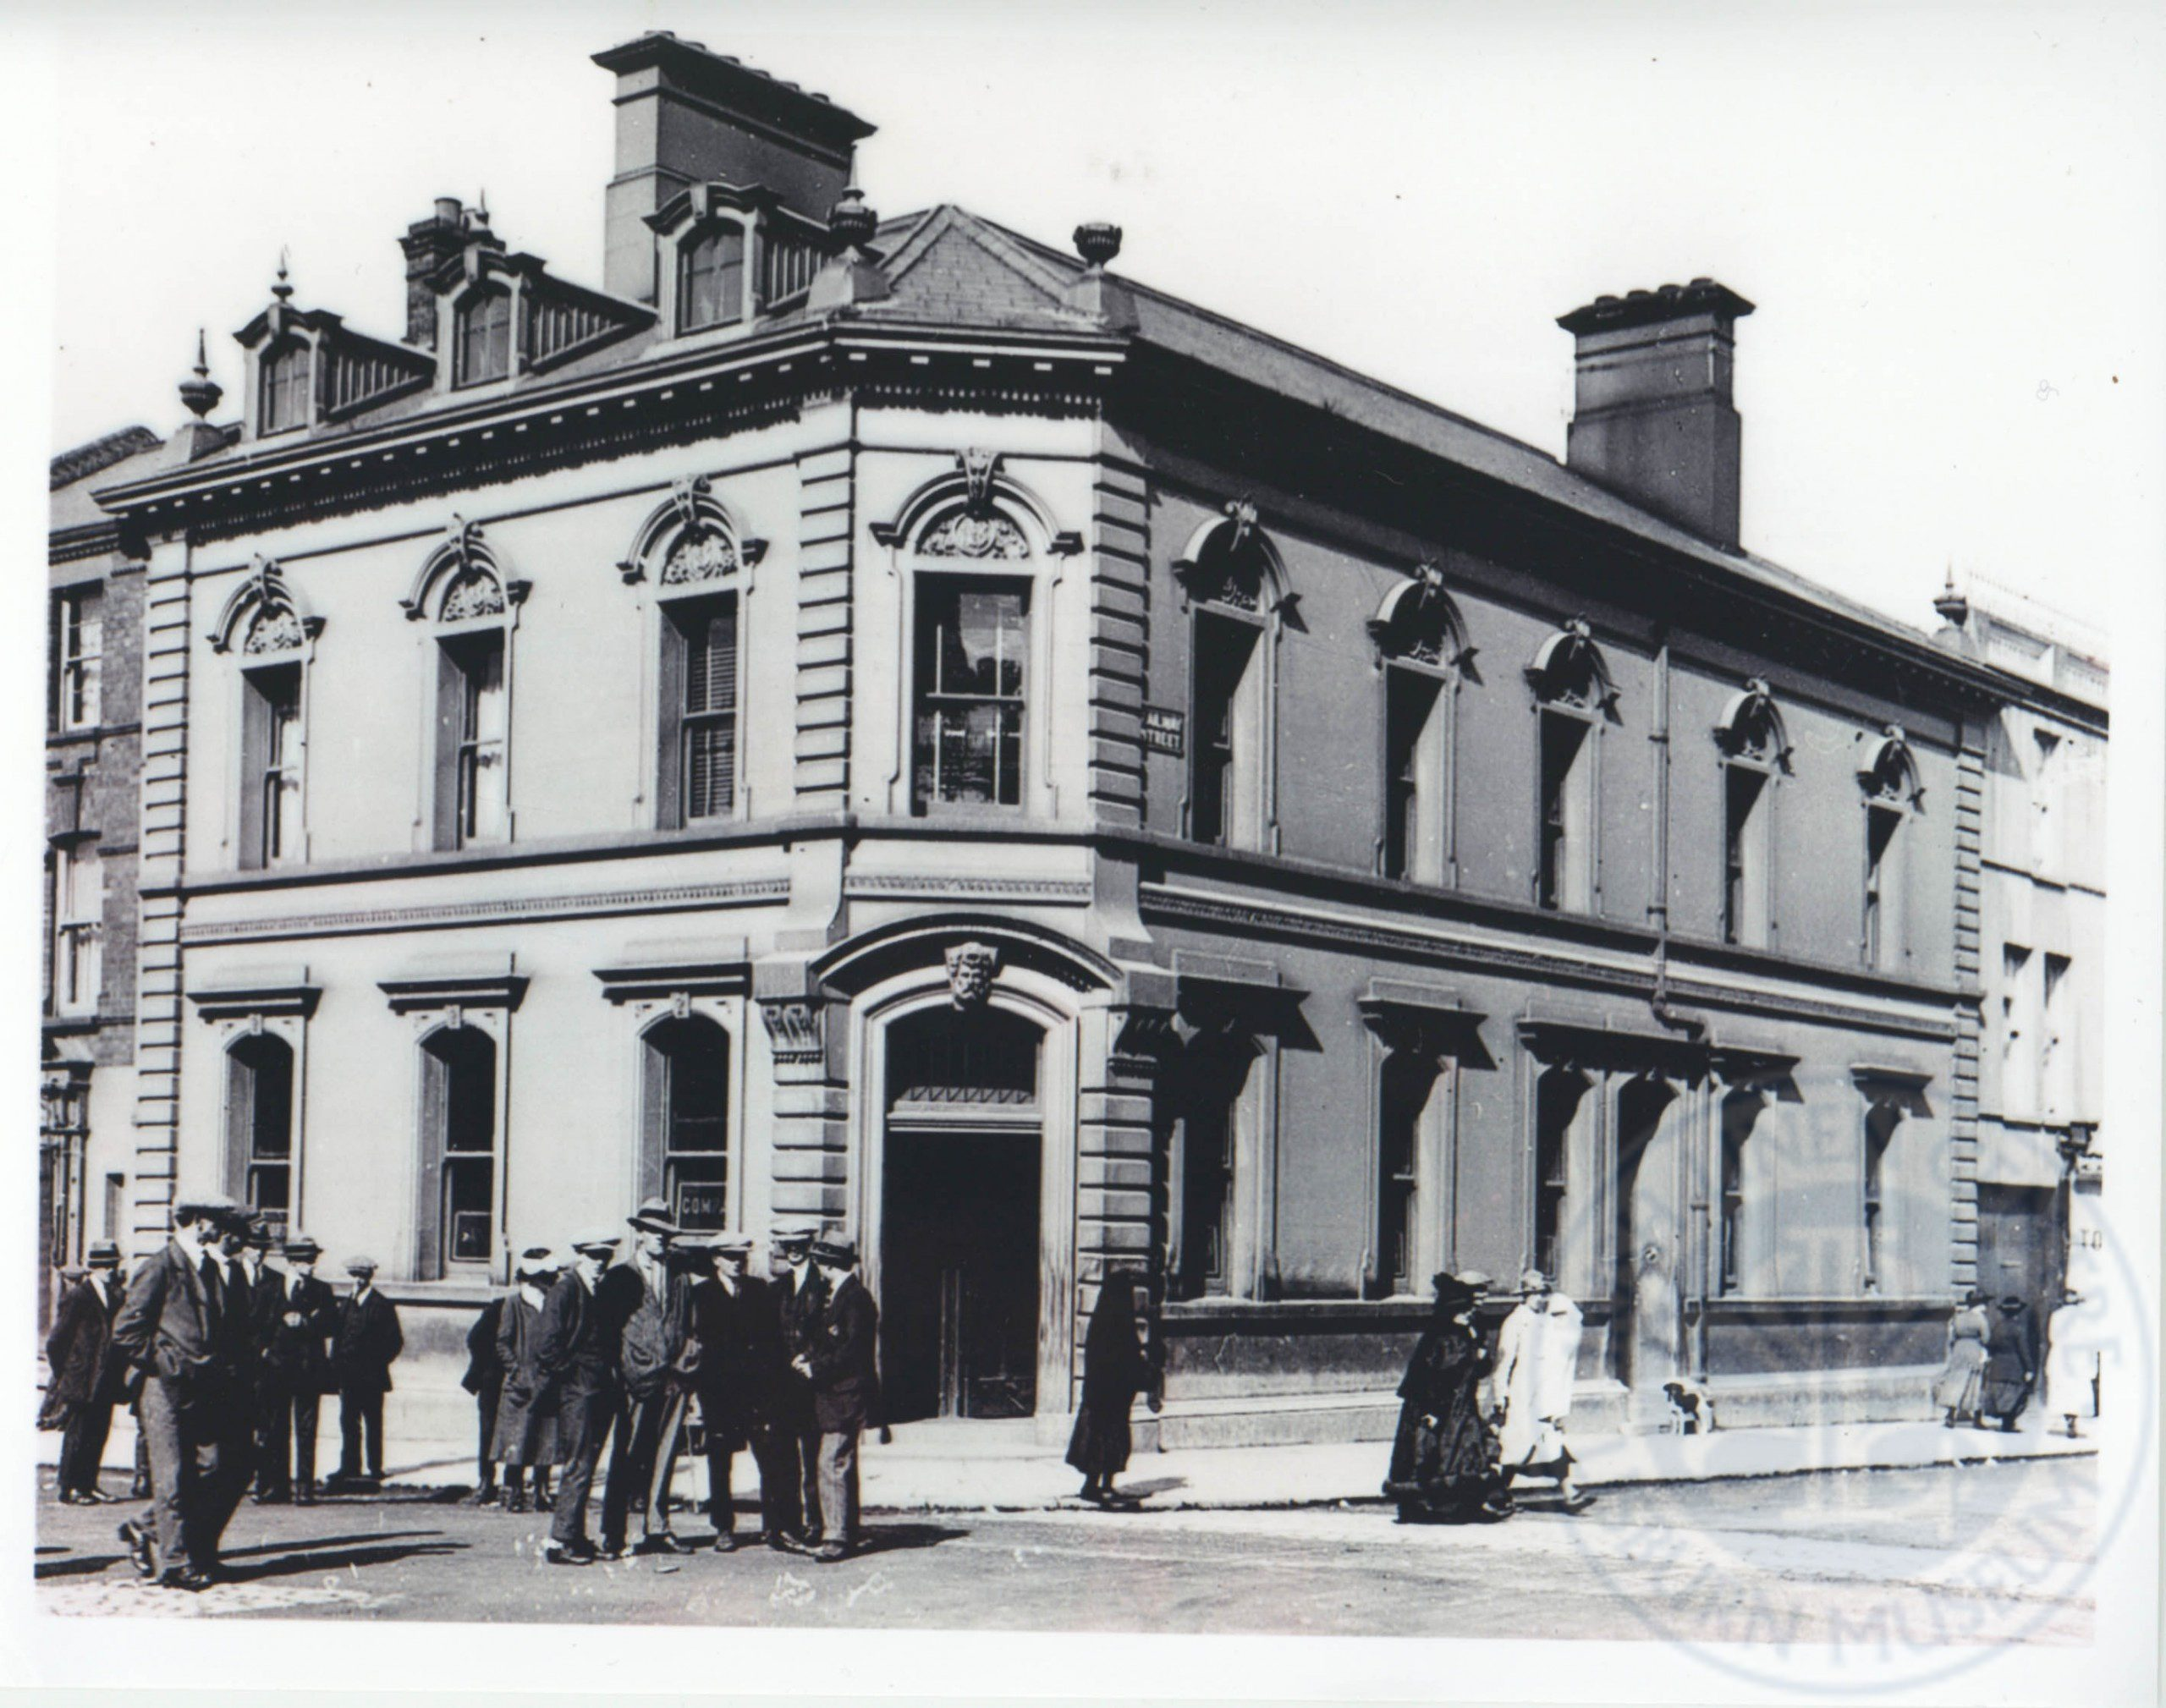 Scene of Swanzy shooting, Lisburn, August 1921 - ILC&LM